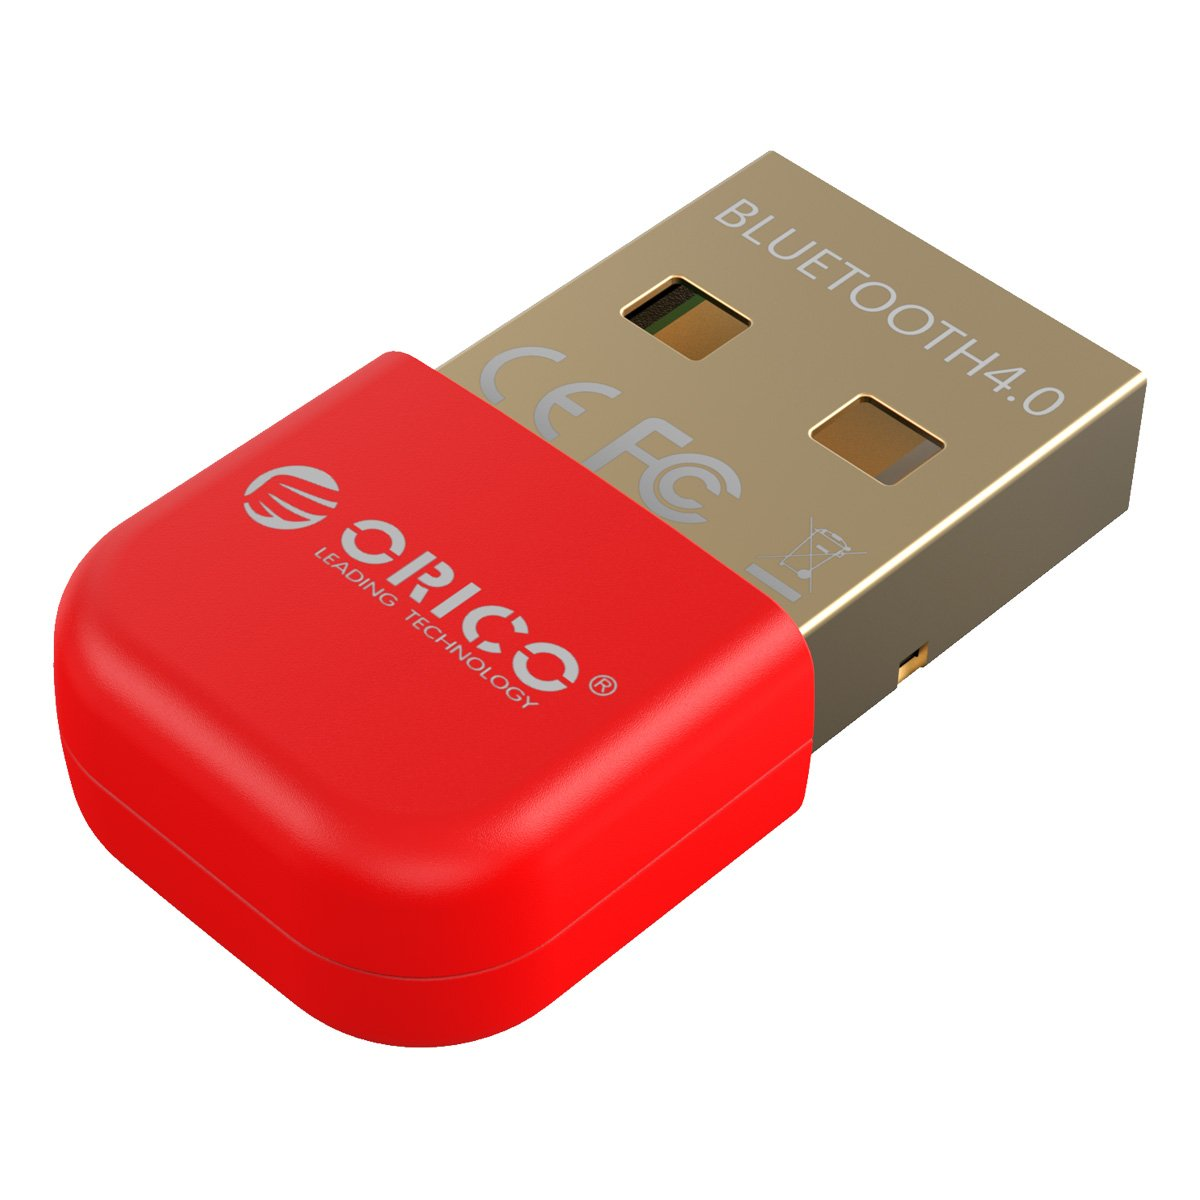 ORICO USB Bluetooth Adapter, Wireless Dongle for Windows XP/Vista / 7/8 / 10 [Ultra Mini and Low Energy, 3Mbps Data Transfer Rate and 20 meters Range, RED] ORICO BTA-403-RD